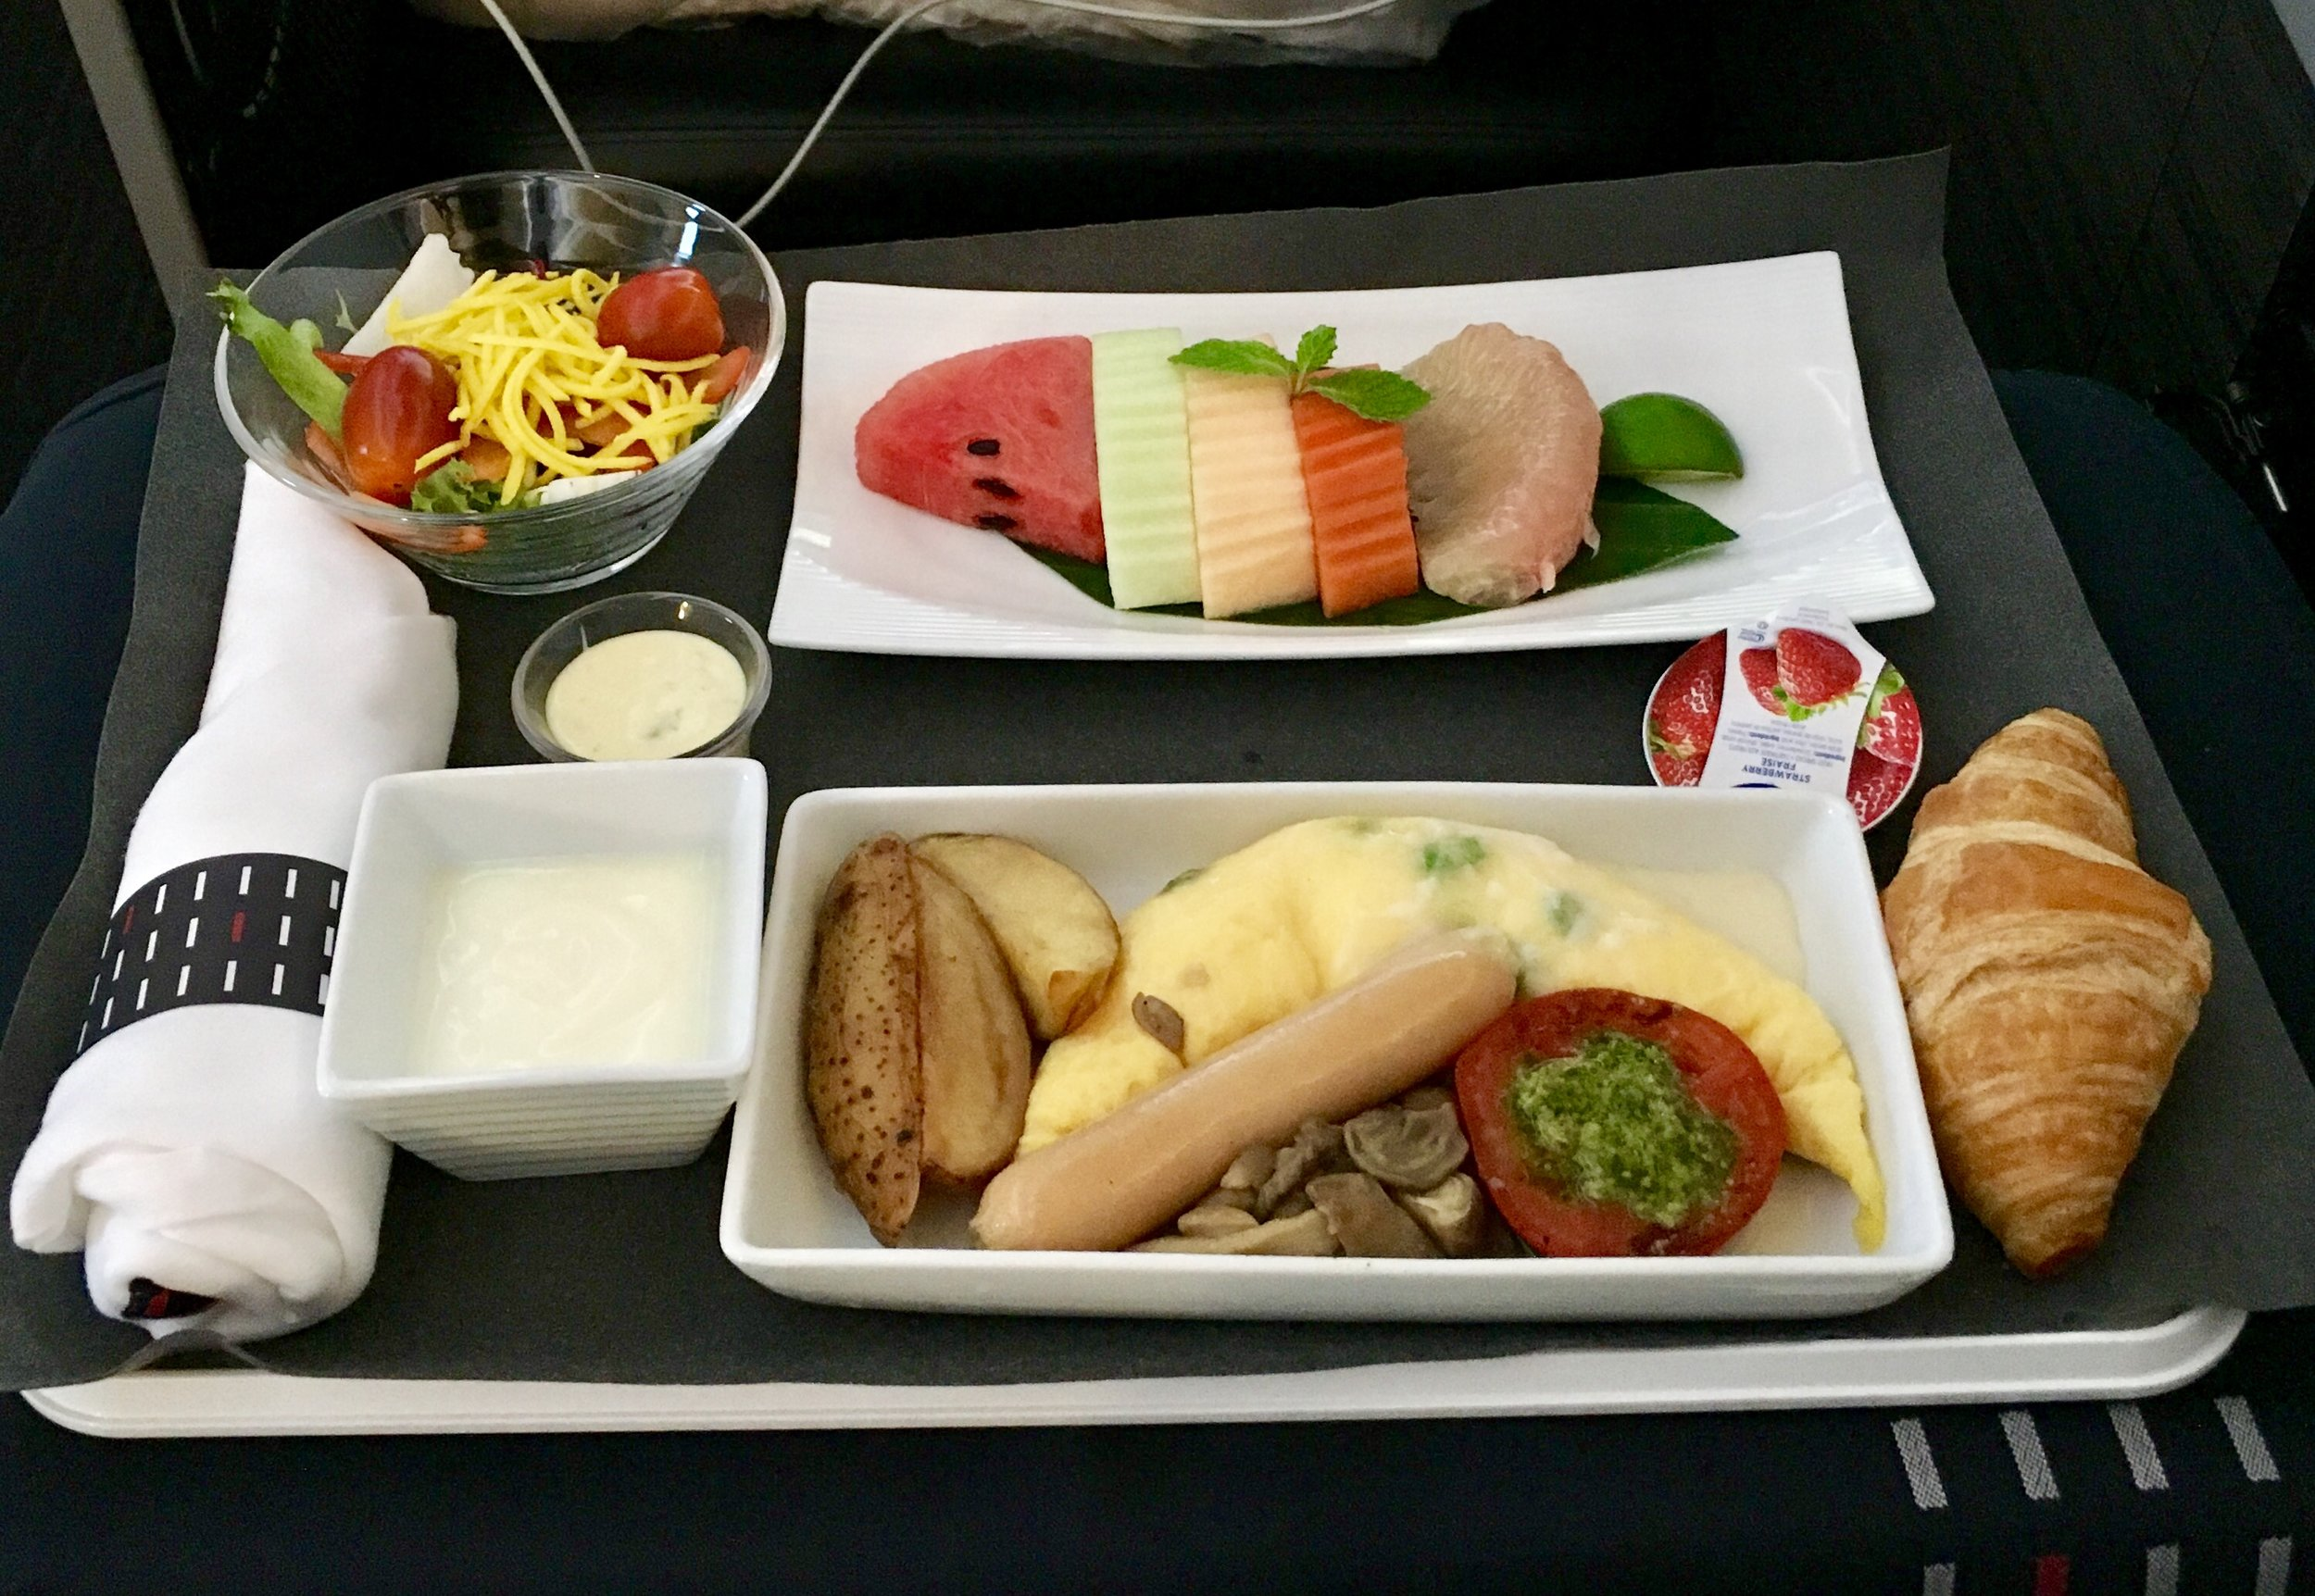 "The breakfast was BAAAD. The salad was fine but the rest…yikes. Tasteless fruit, lukewarm eggs with nasty sausage, a croissant still a bit frozen in the middle. It's like they tried to make stereotypical ""bad plane food"". Very disappointing, especially in business, and especially on JAL."